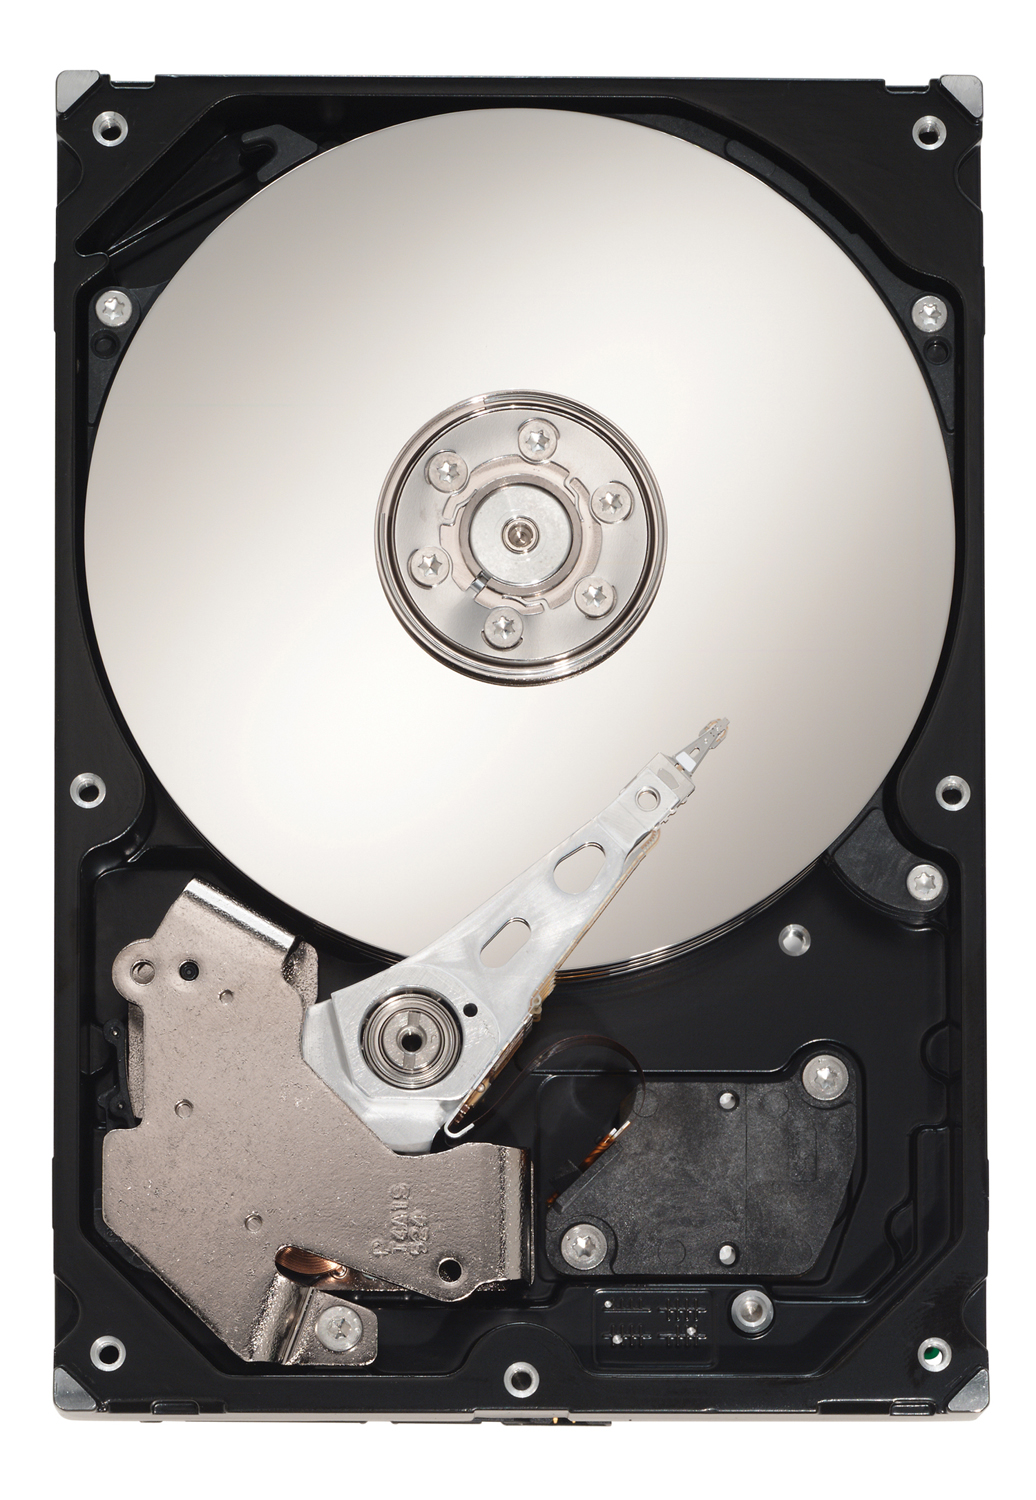 HM502JX Samsung Spinpoint 500GB 5400RPM USB 2.0 8MB Cache 2.5-inch Internal Hard Drive